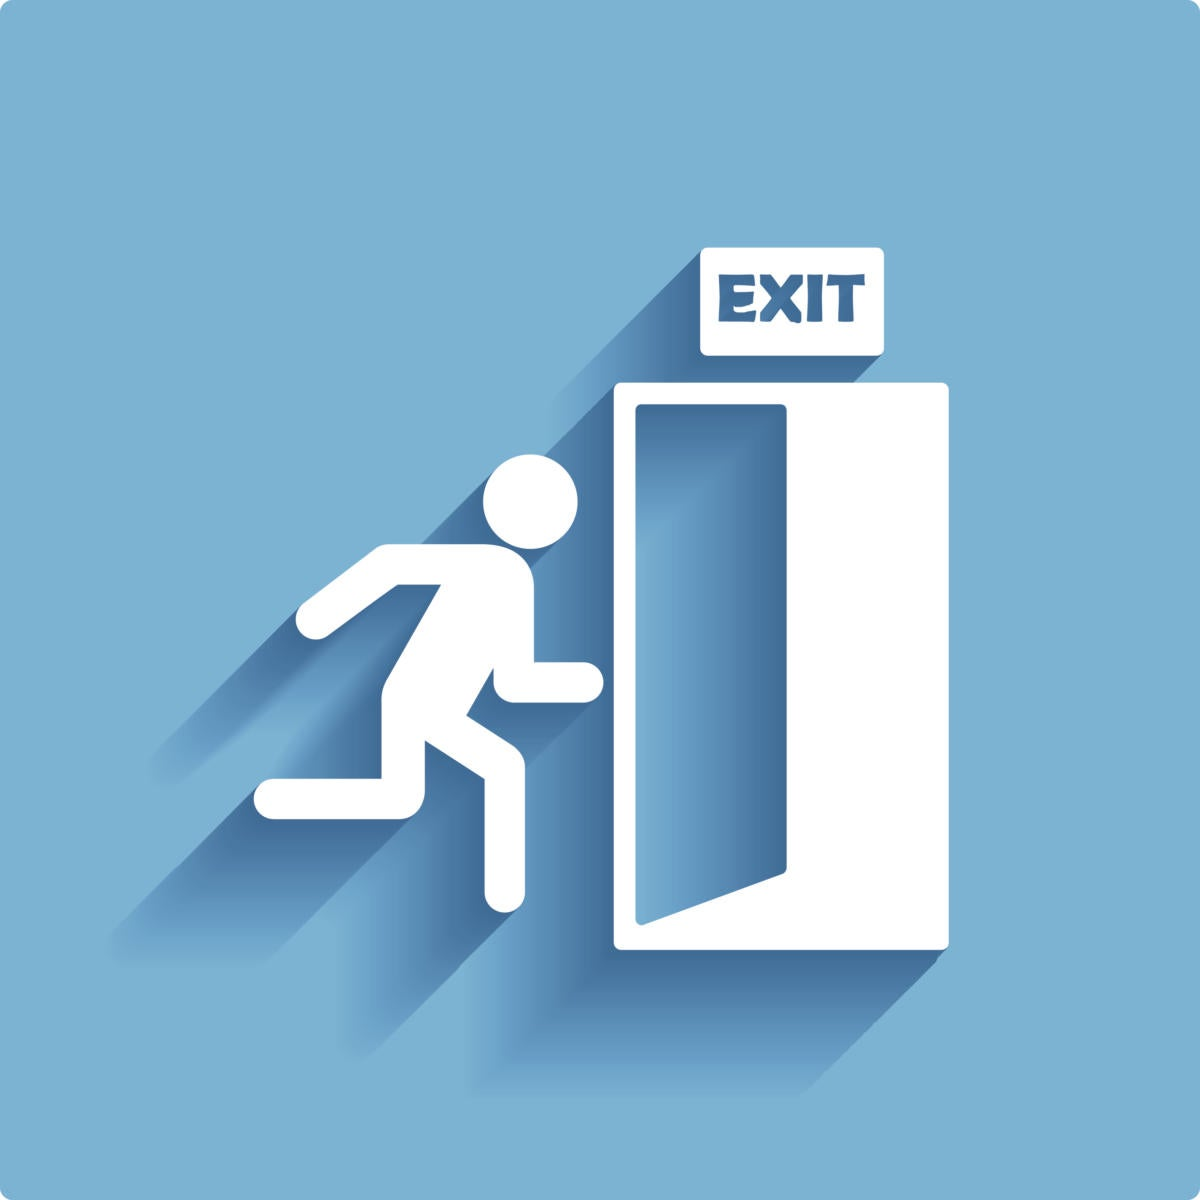 icon man running toward exit sign and door